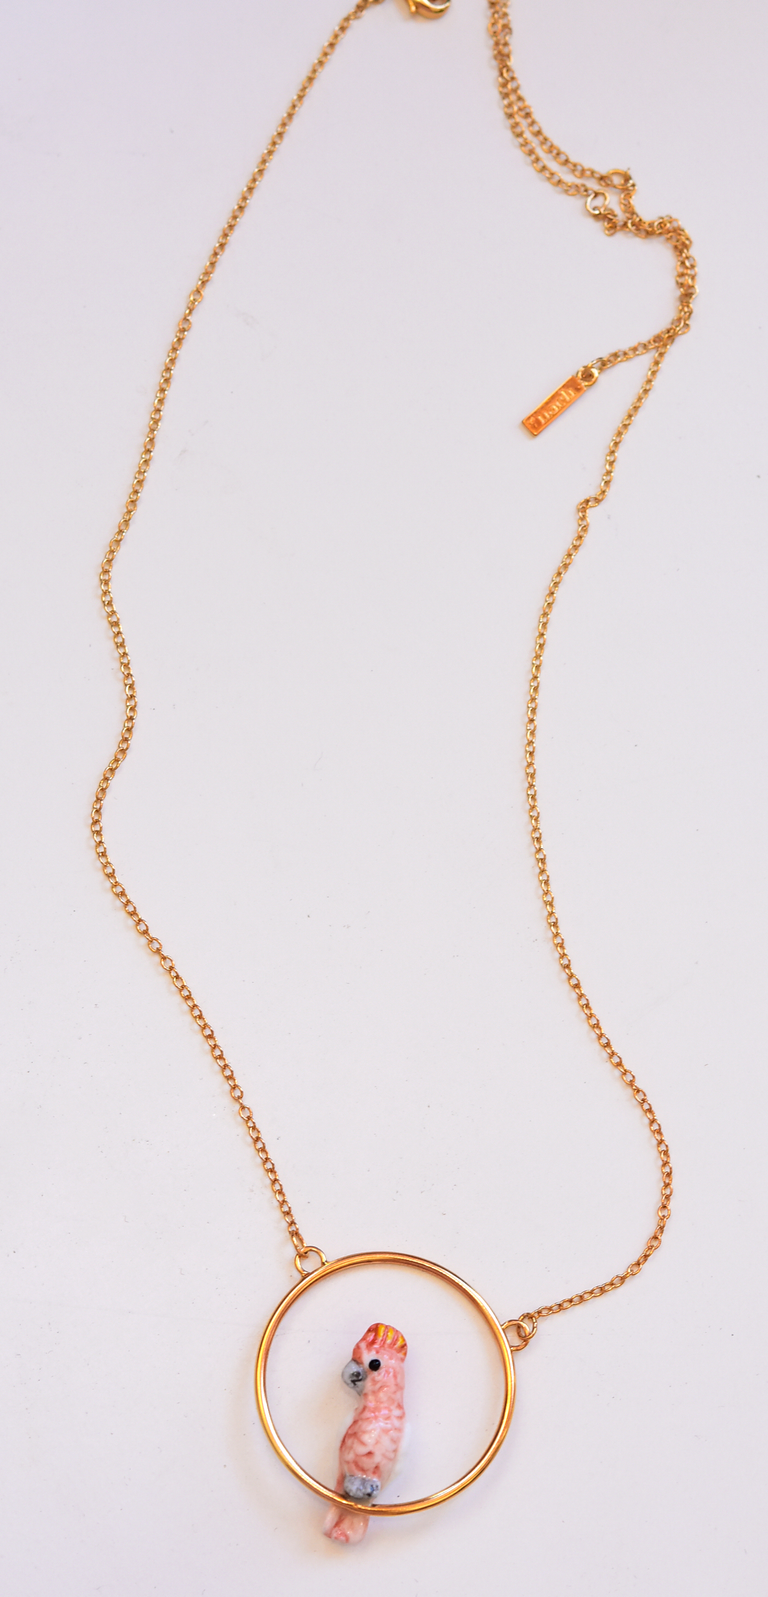 Pink Cockatoo Necklace - Goldmakers Fine Jewelry